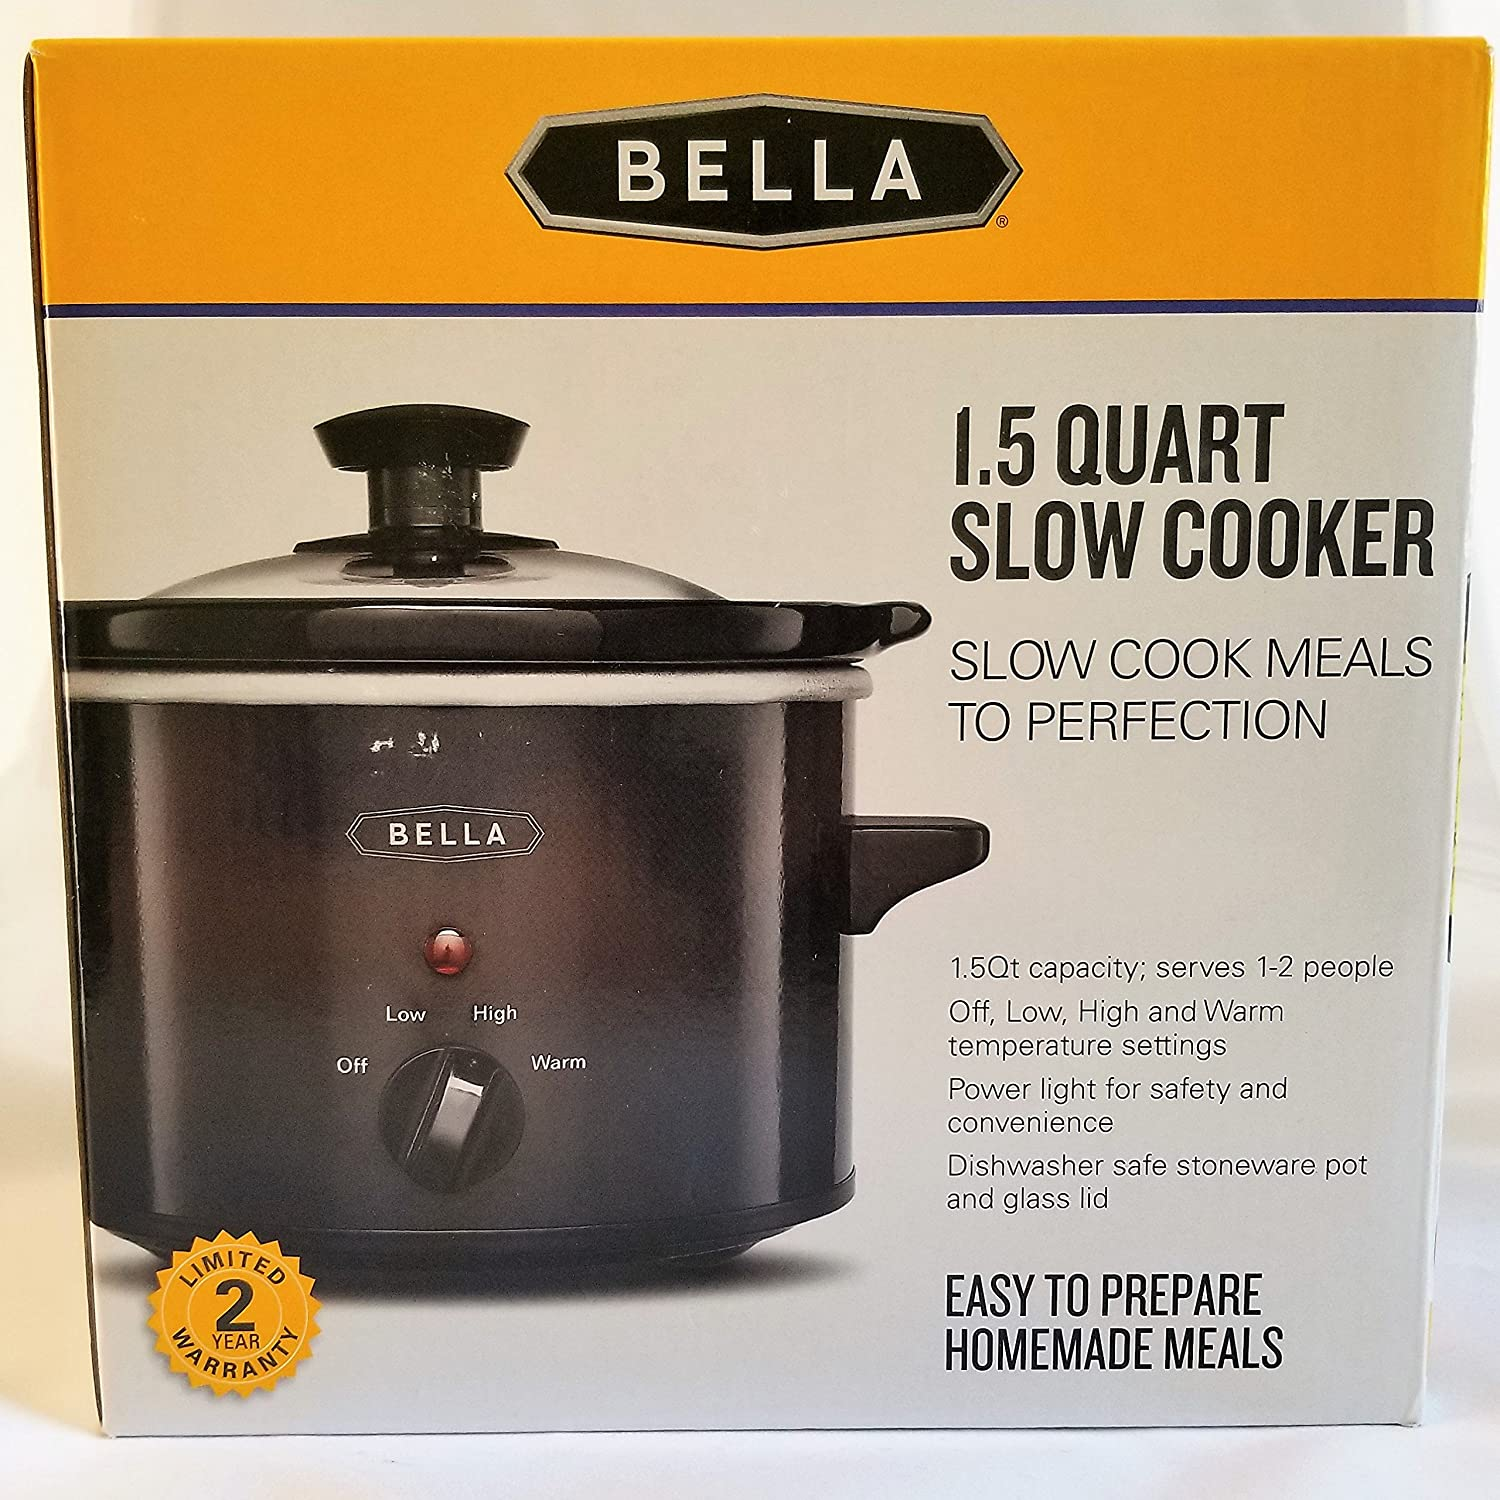 BELLA 1.5 Qt Quart Slow Cooker Crock w/Tempered Glass Lid